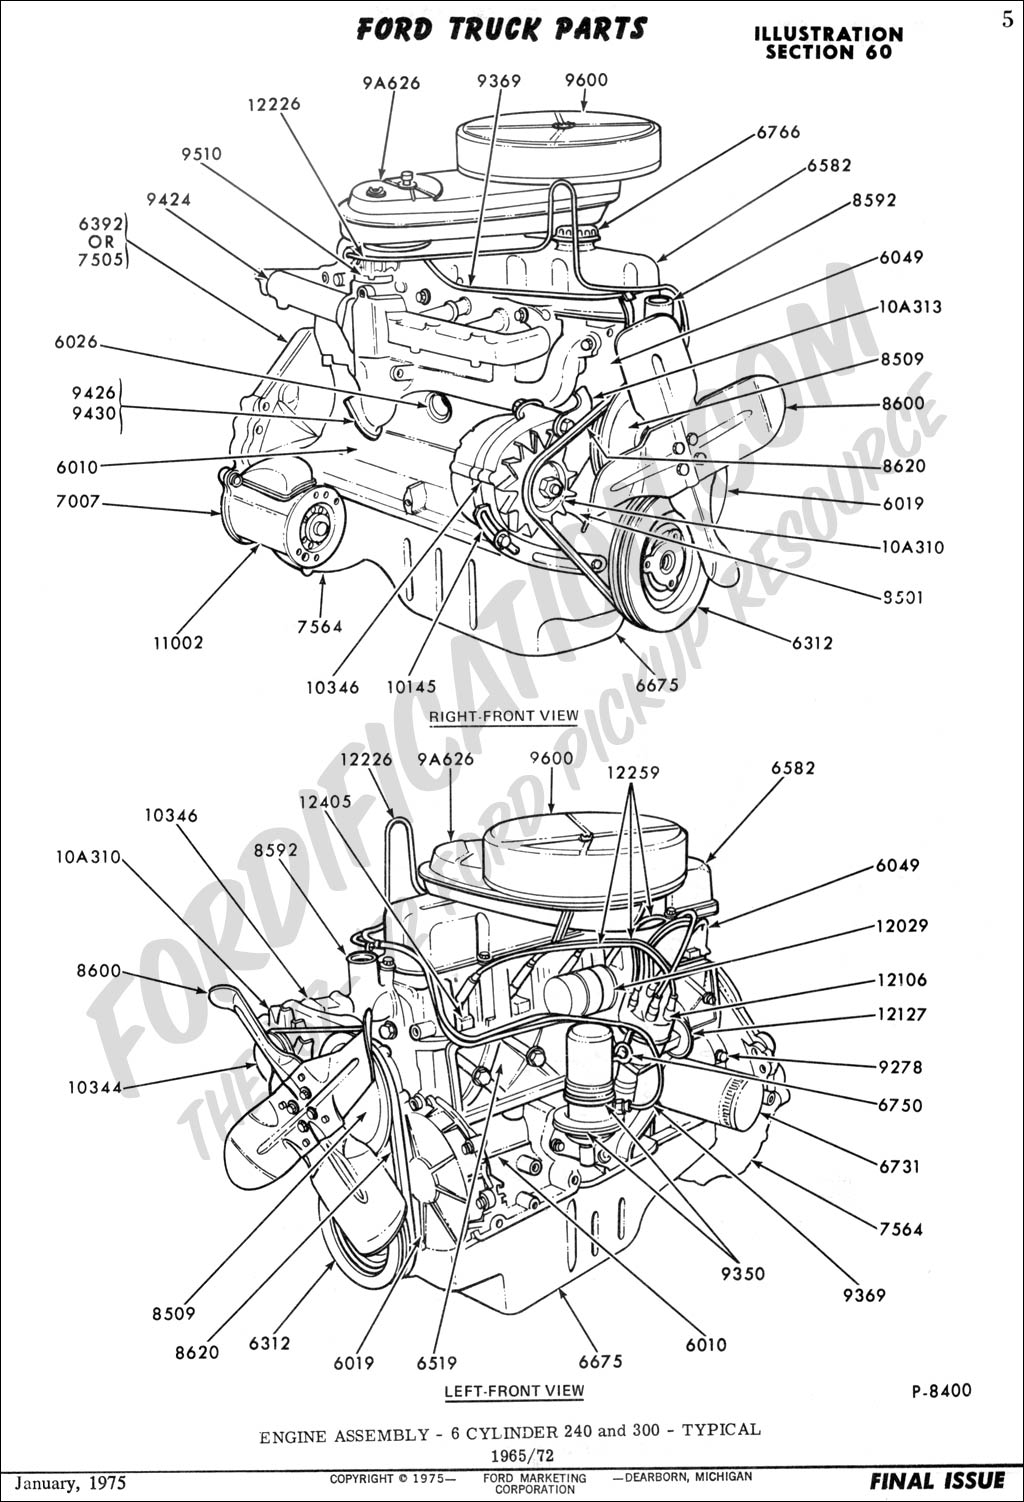 1970 Chevelle Horn Wiring Diagram furthermore Diagram view additionally Viewtopic further Ford 460 Firing Order Diagram in addition Schematics h. on 1972 ford f100 wiring diagram